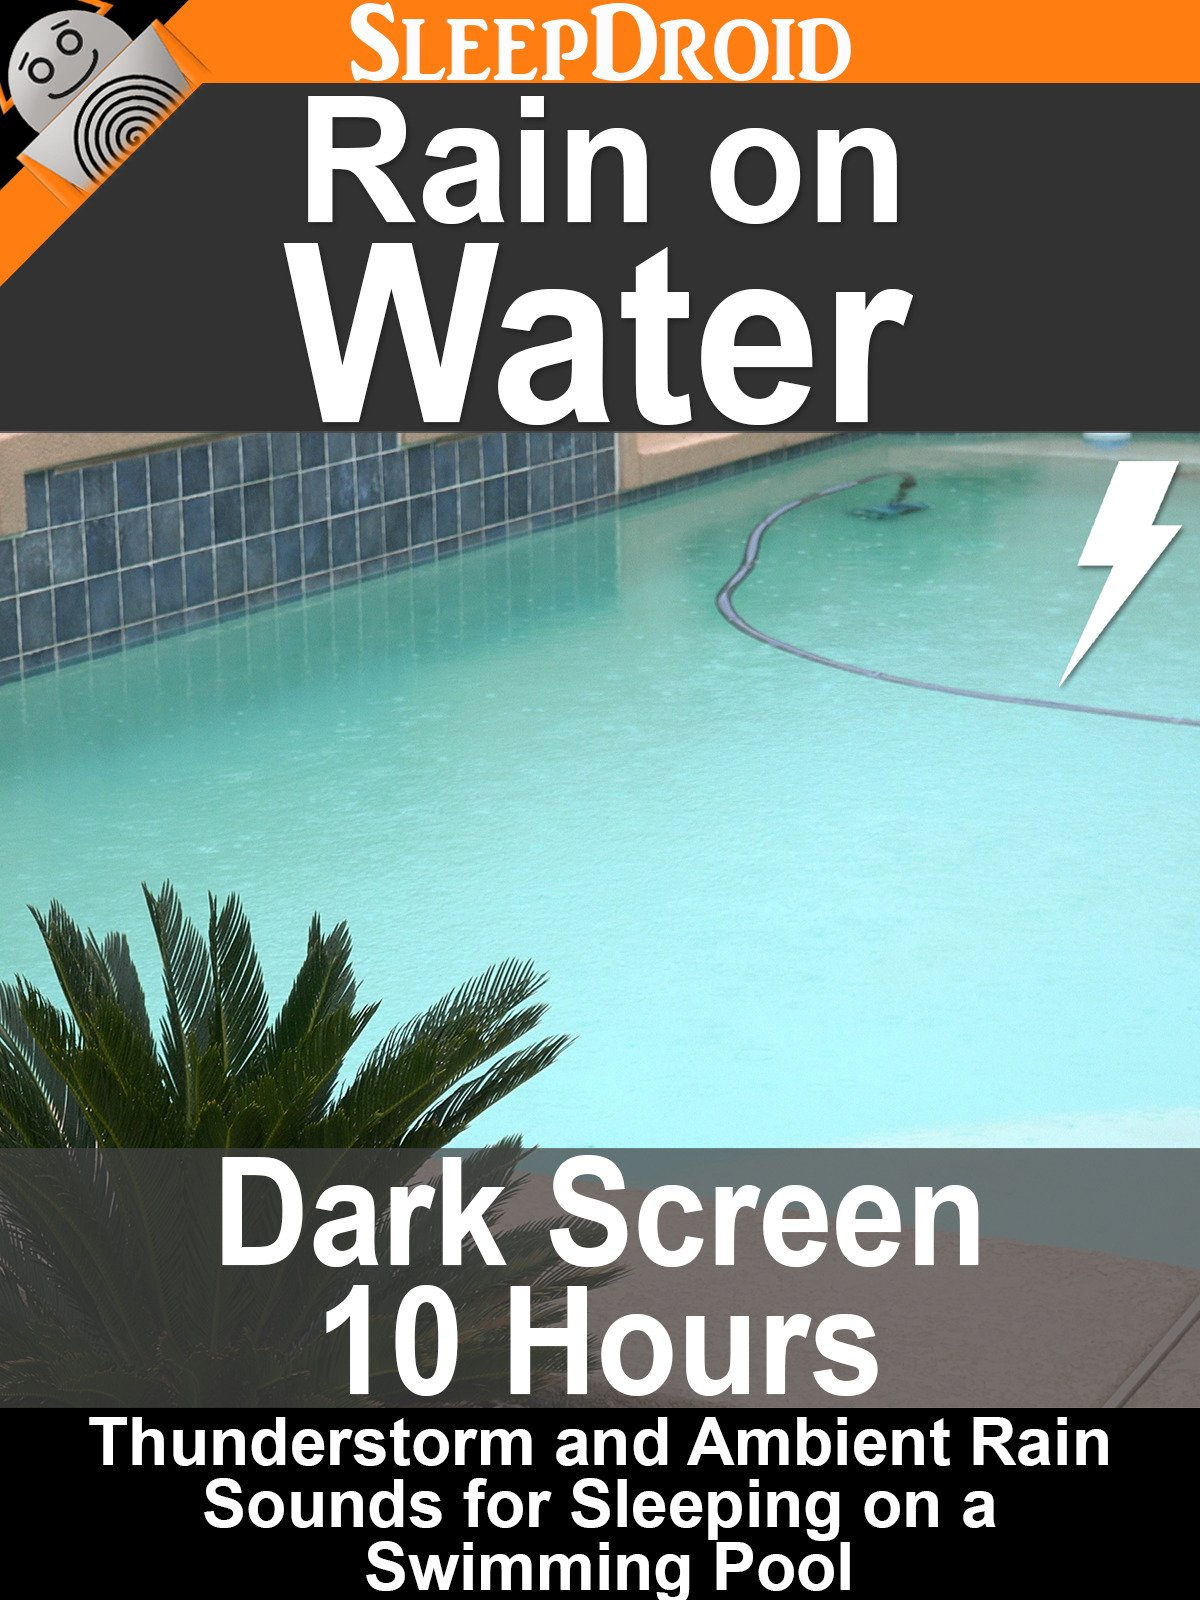 Rain on Water: Dark Screen 10 Hours Thunderstorm and Ambient Rain Sounds for Sleeping on a Swimming Pool